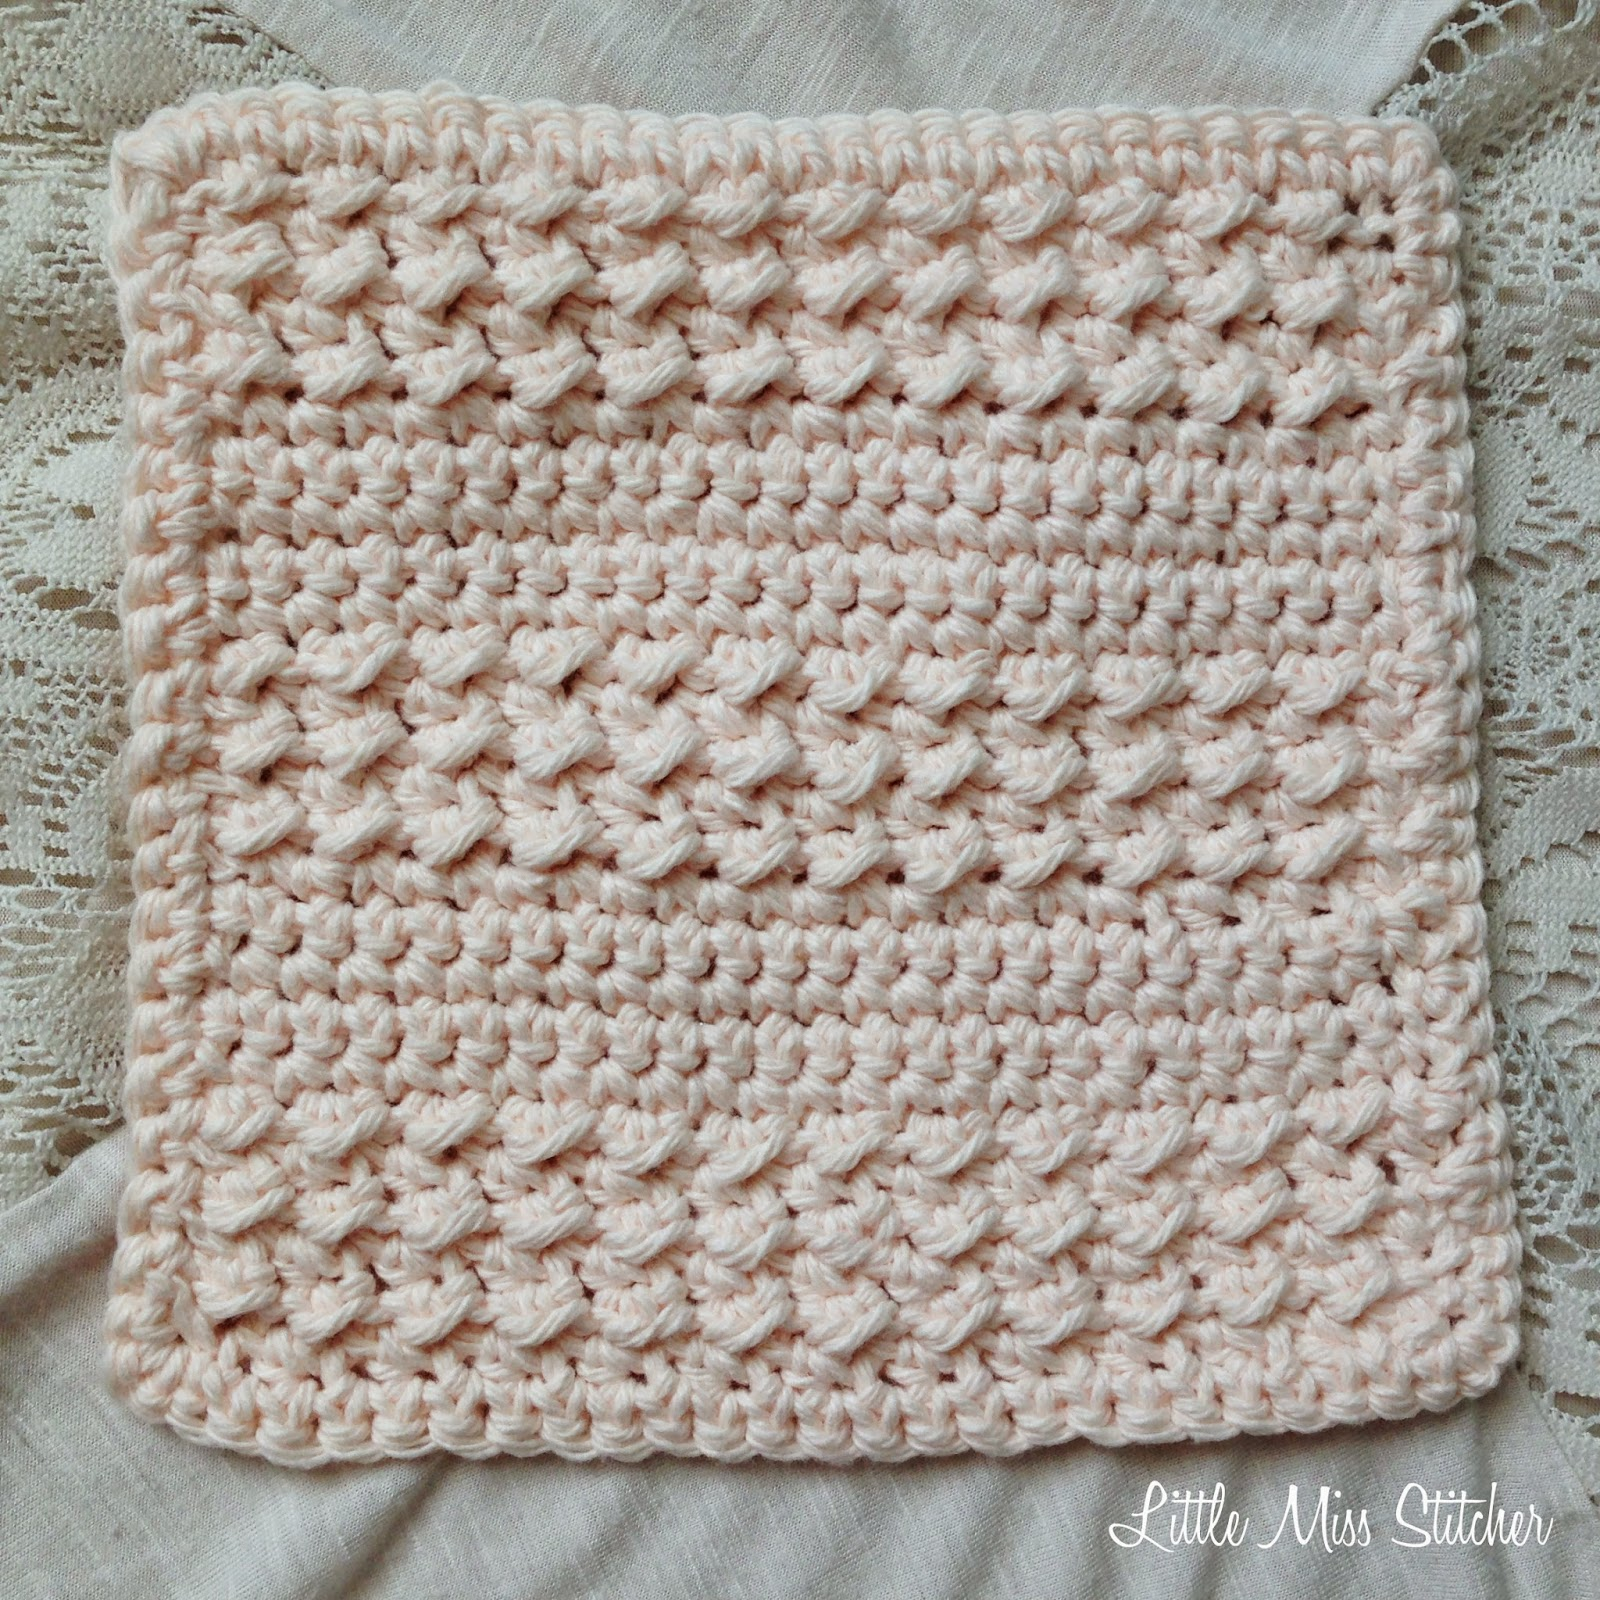 ... something so theraputic about crocheting dishcloths, dont you think